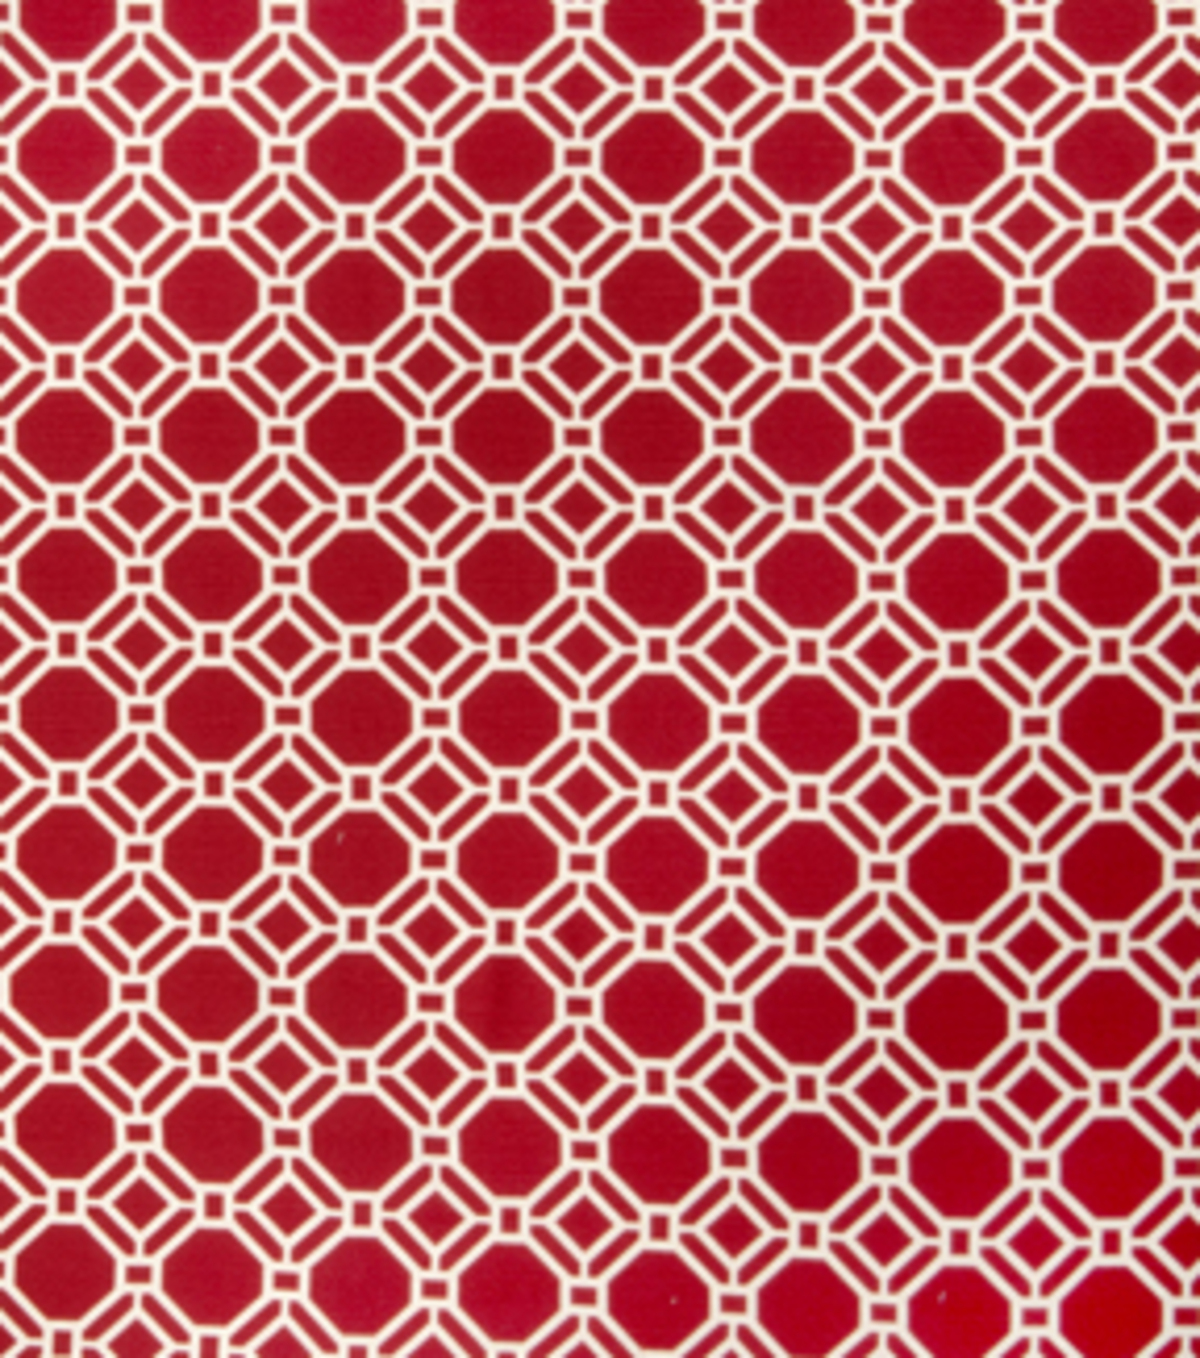 Home Decor 8\u0022x8\u0022 Fabric Swatch-SMC Designs Archway / Cardinal-Jcp